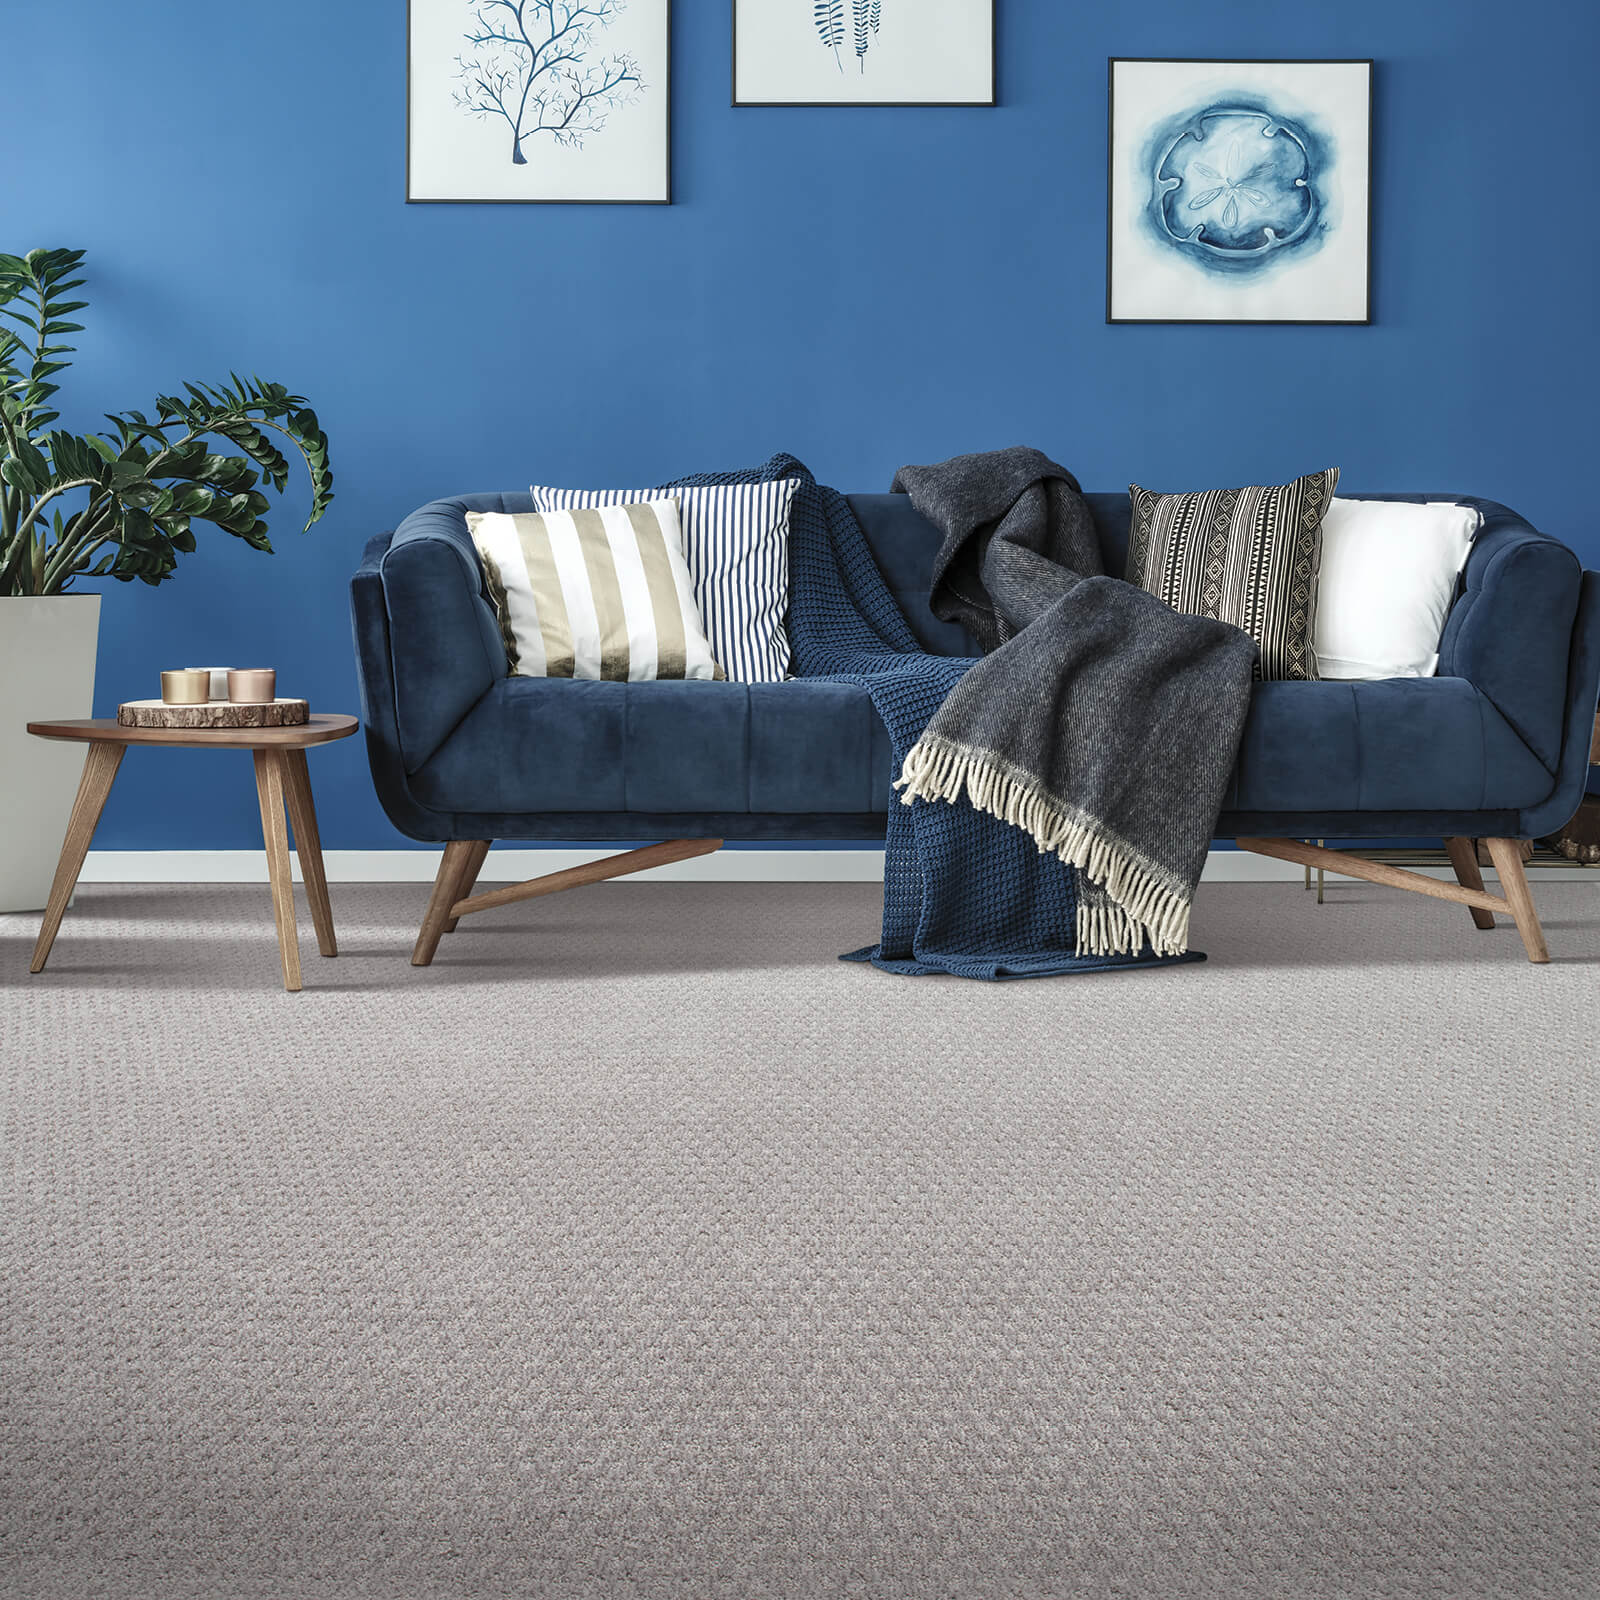 Blue couch on Carpet flooring | Floorida Floors